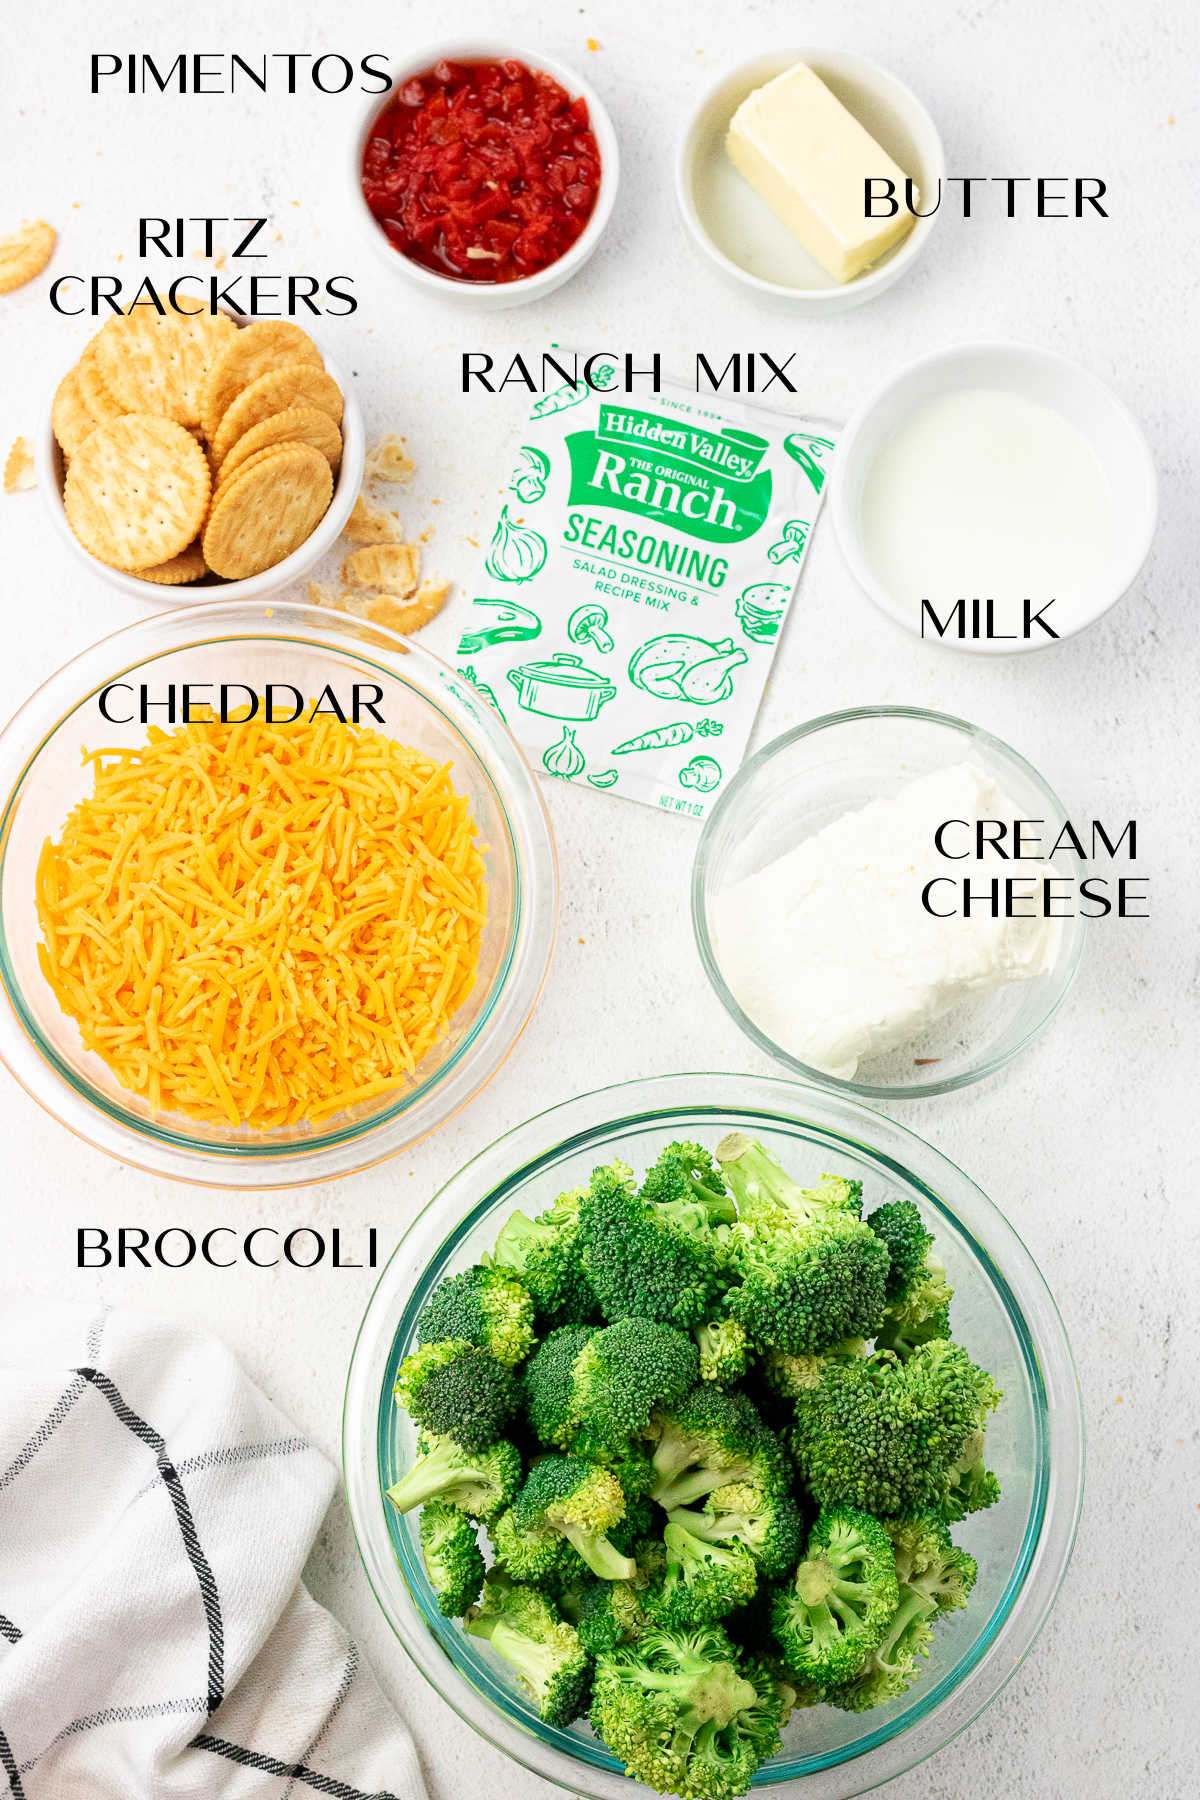 Ingredients for the broccoli cheese casserole.